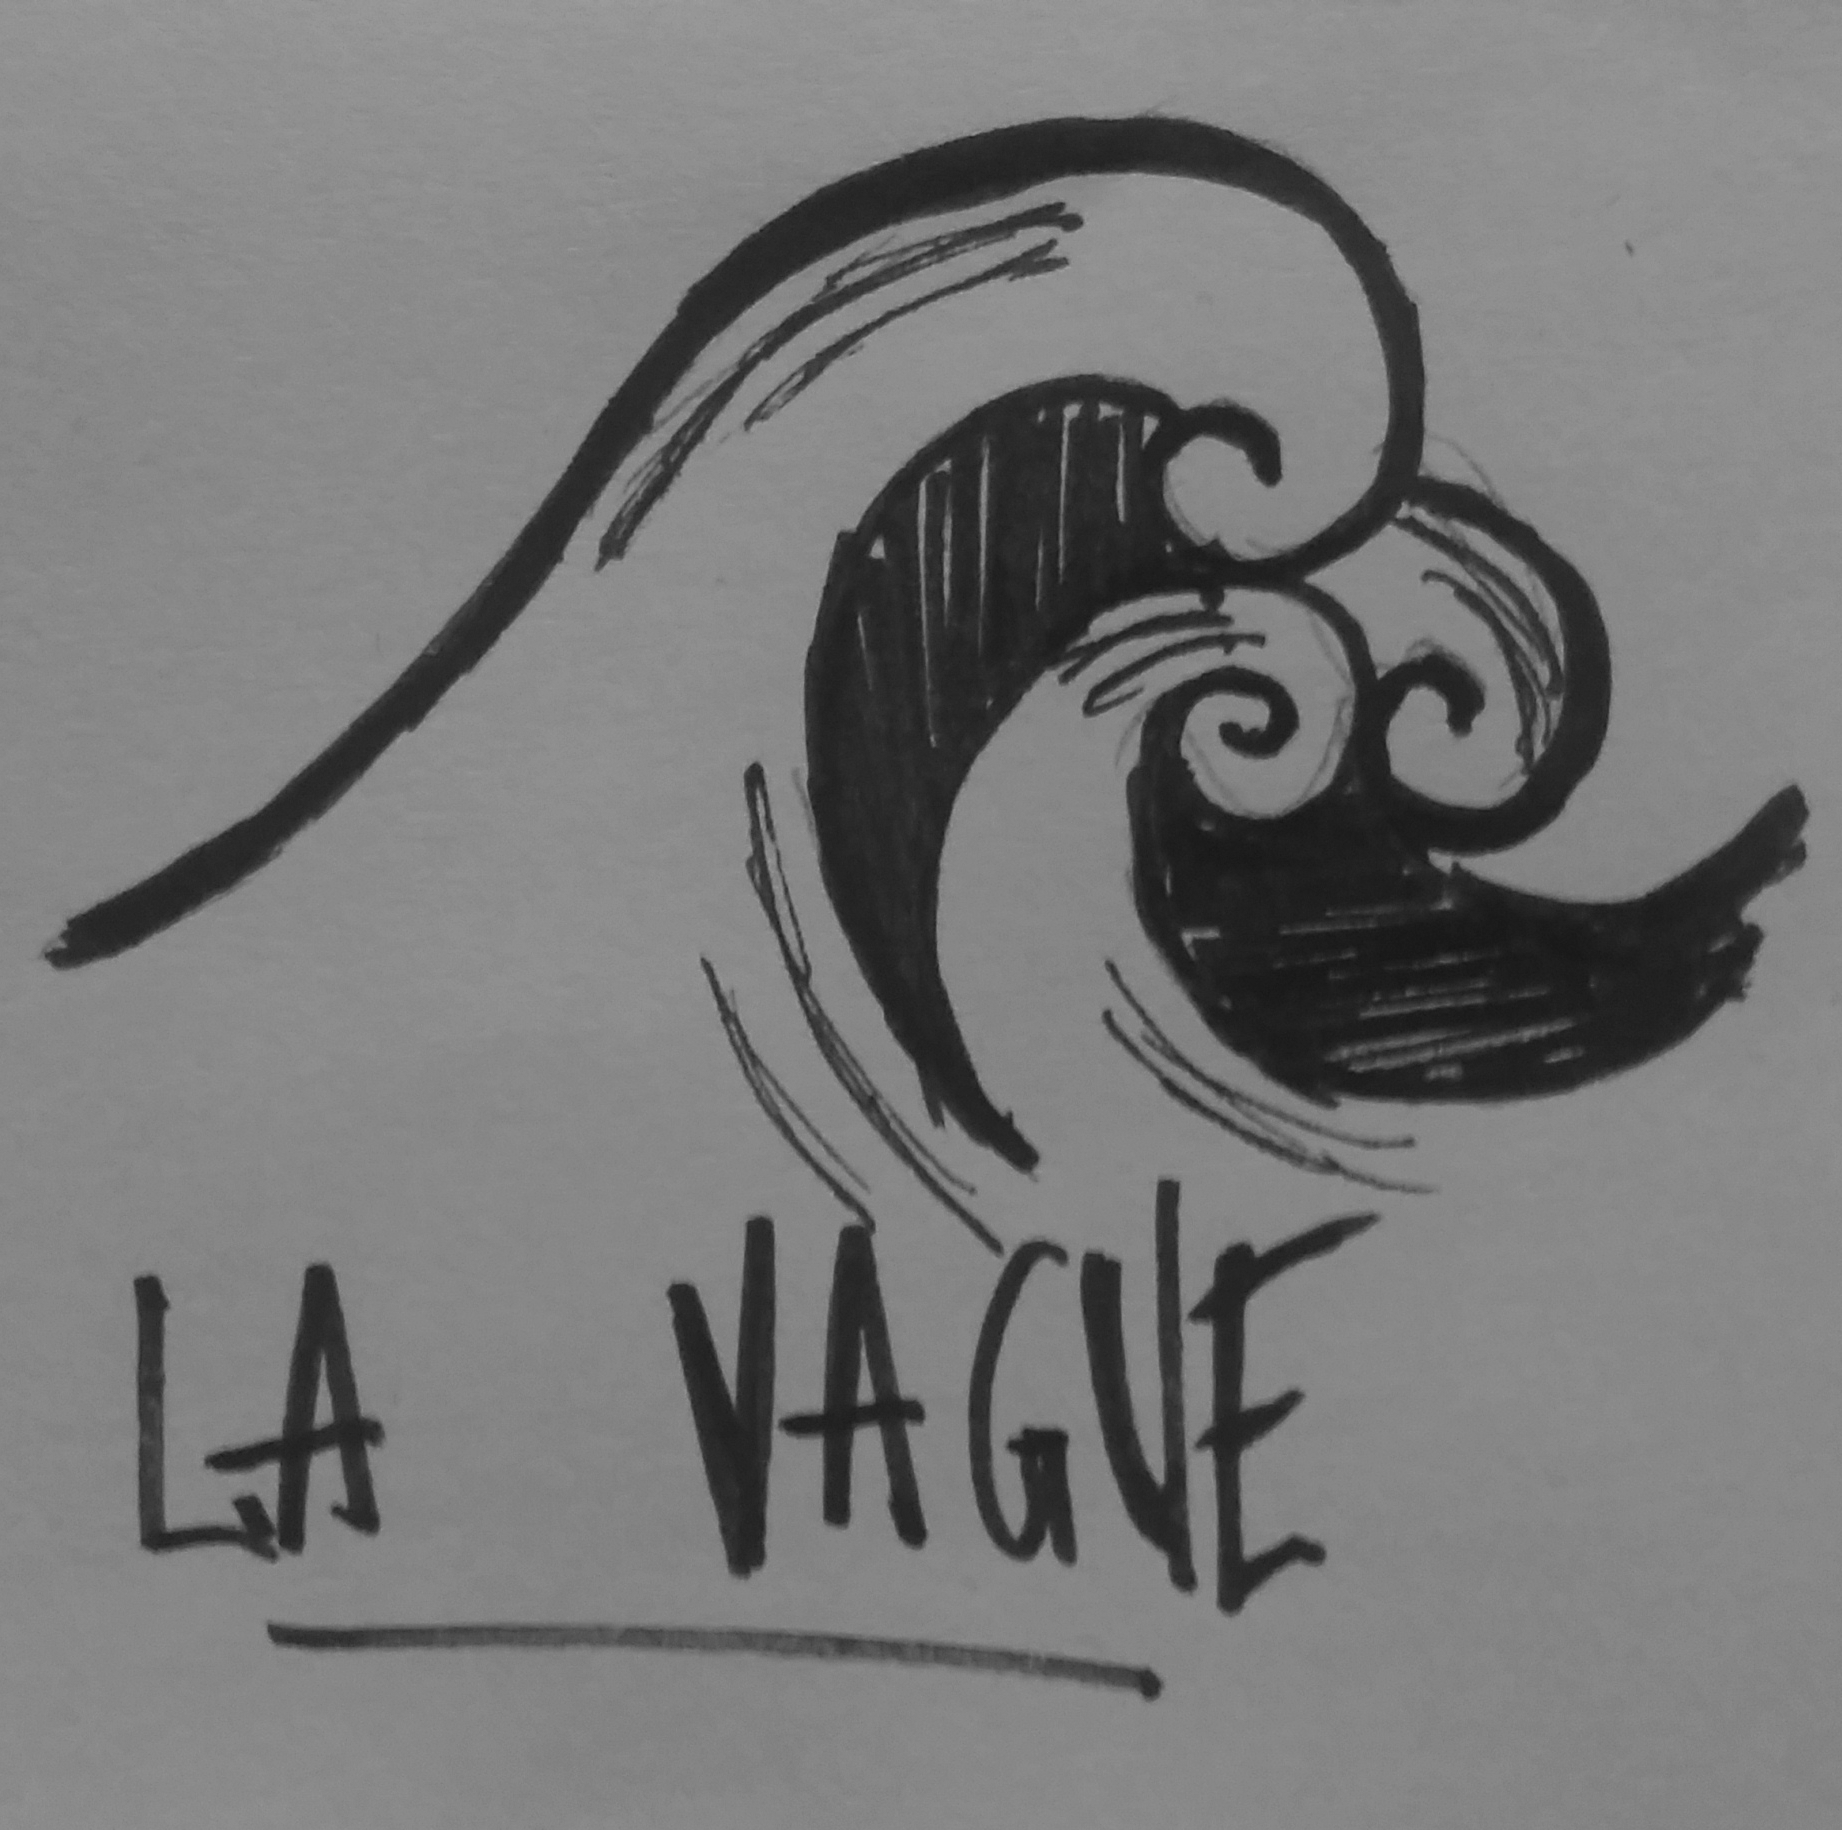 dessin de vague